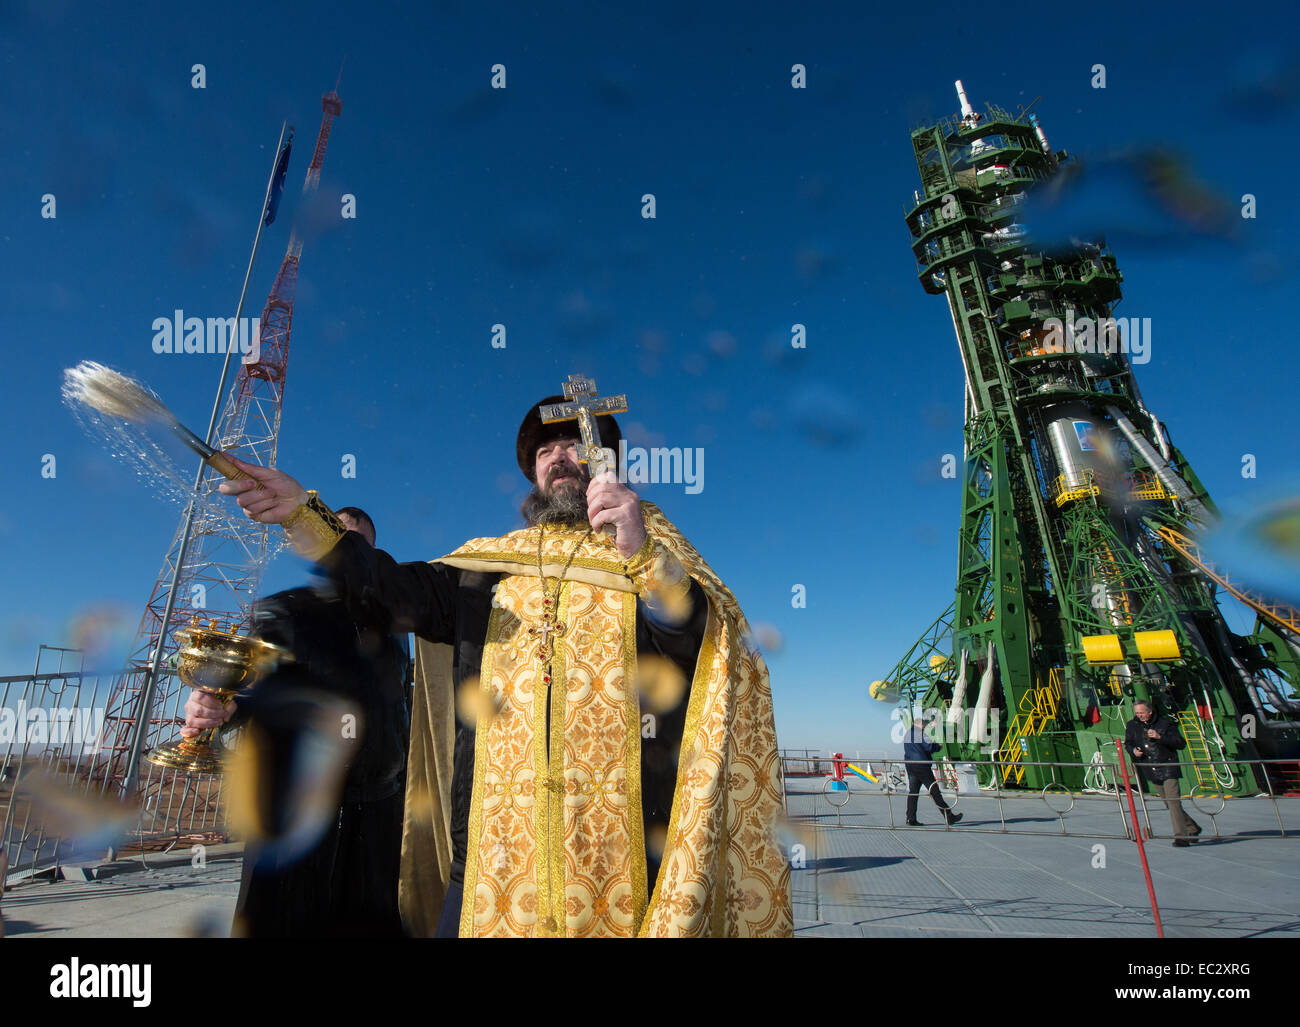 An Orthodox priest blesses members of the media at the Baikonur Cosmodrome launch pad on Saturday, Nov. 22, 2014, - Stock Image